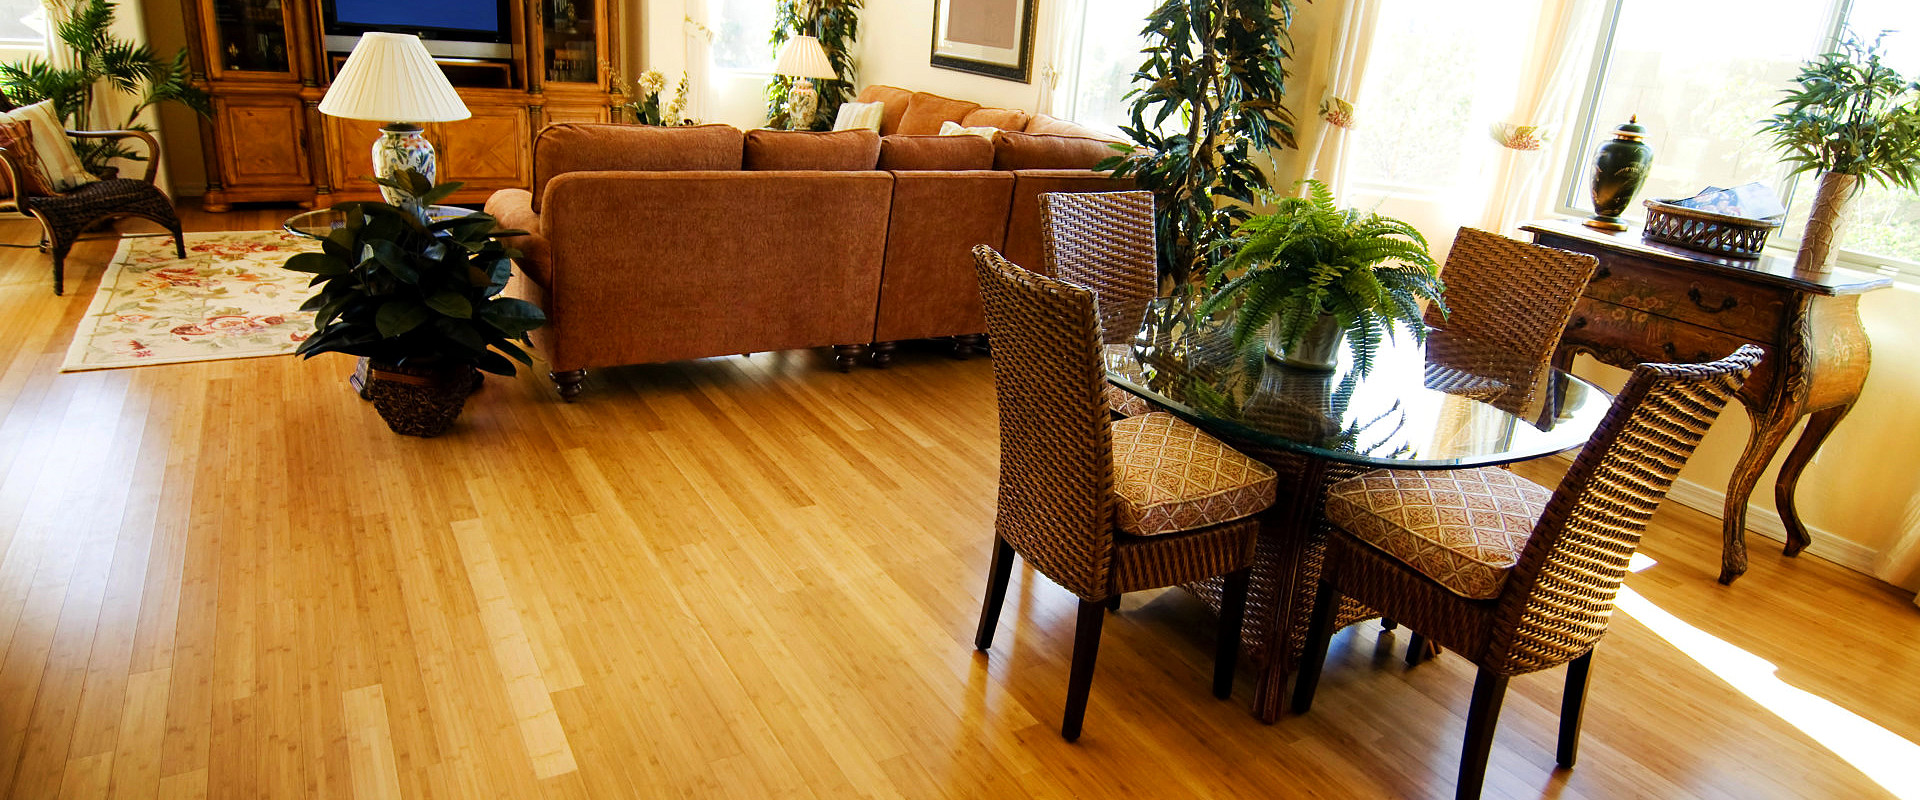 hardwood floor refinishing livonia mi of leons flooring outlet quality wood vinyl and carpet flooring intended for dining room floor mat